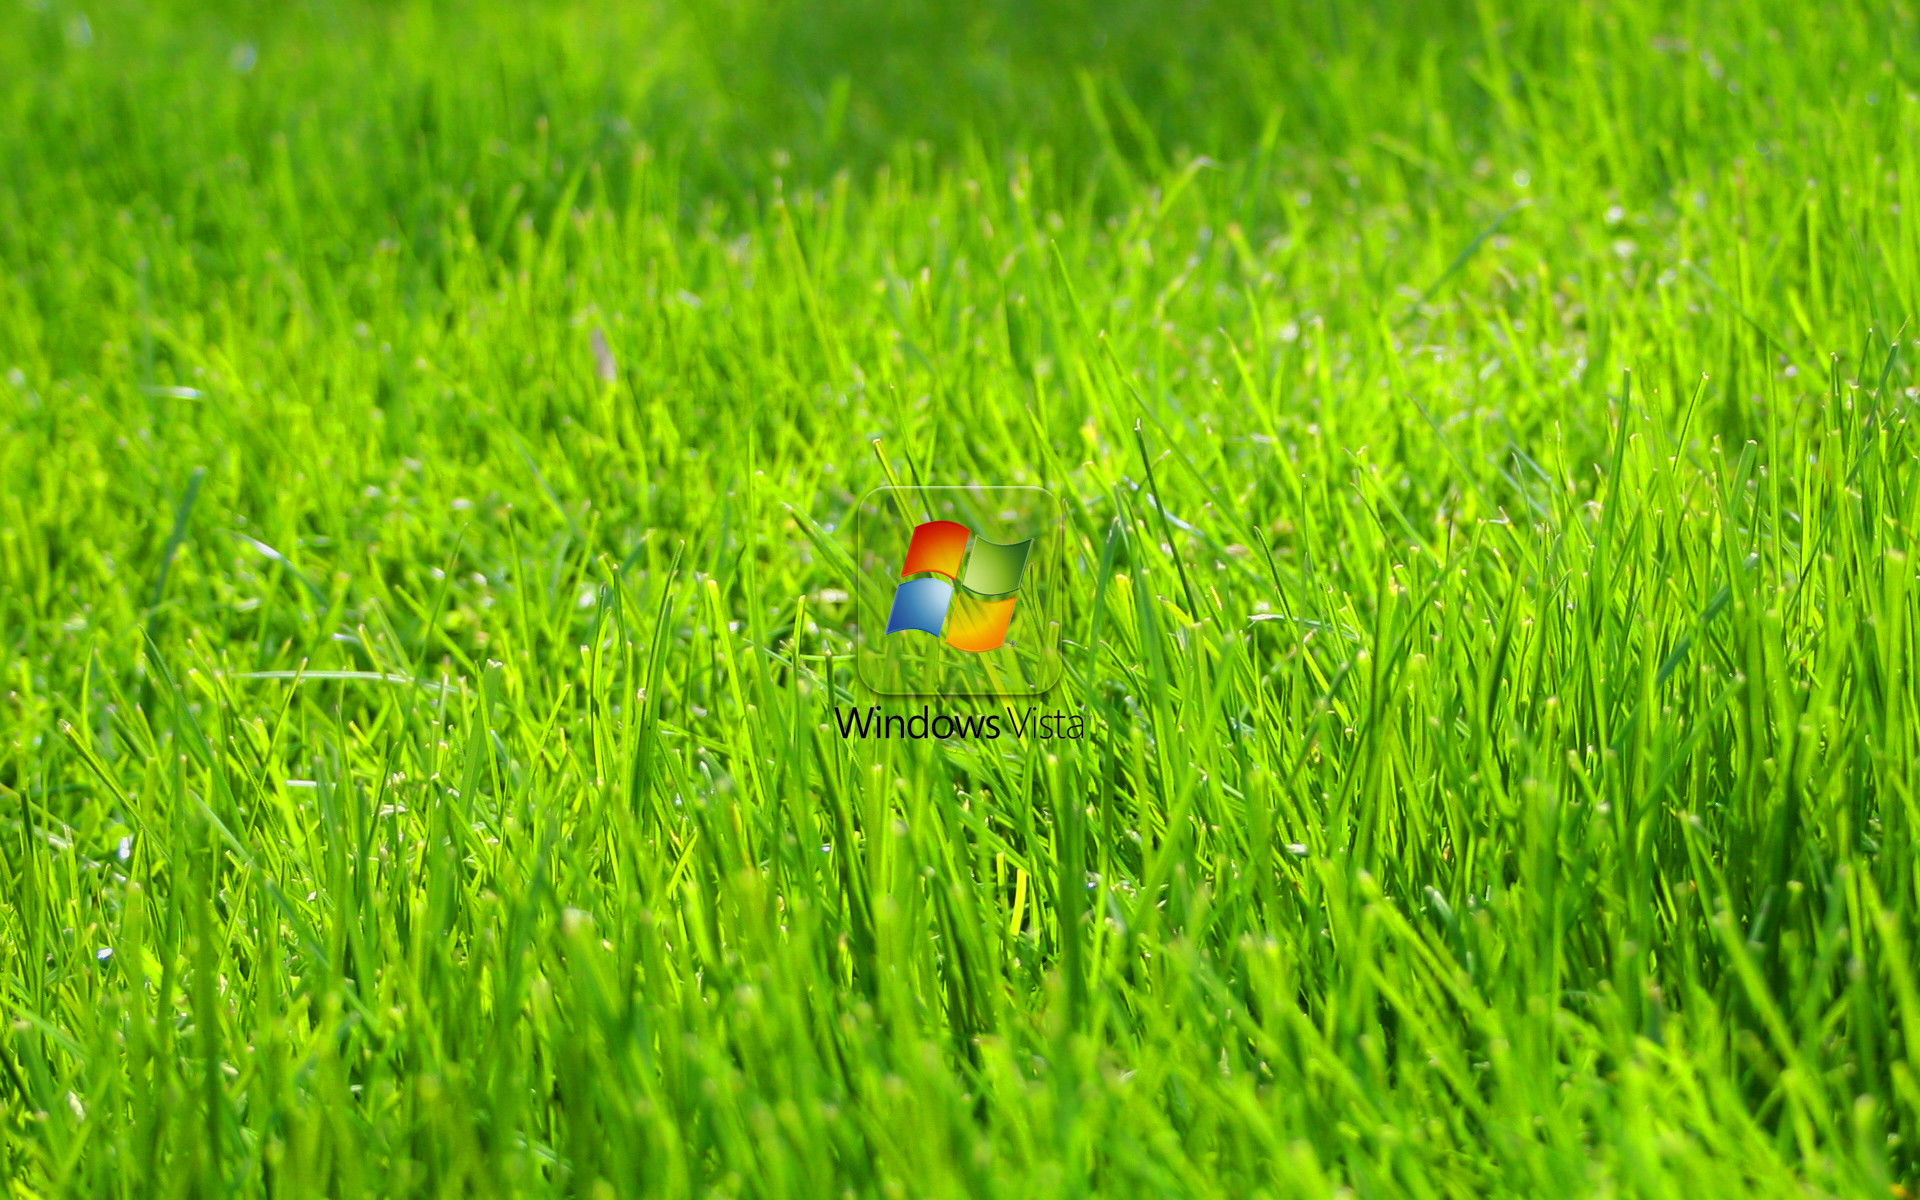 2560x1600 Exciting Windows 7 Wallpapers Interesting Vista Default Wallpaper Backgrounds 2560x1600px